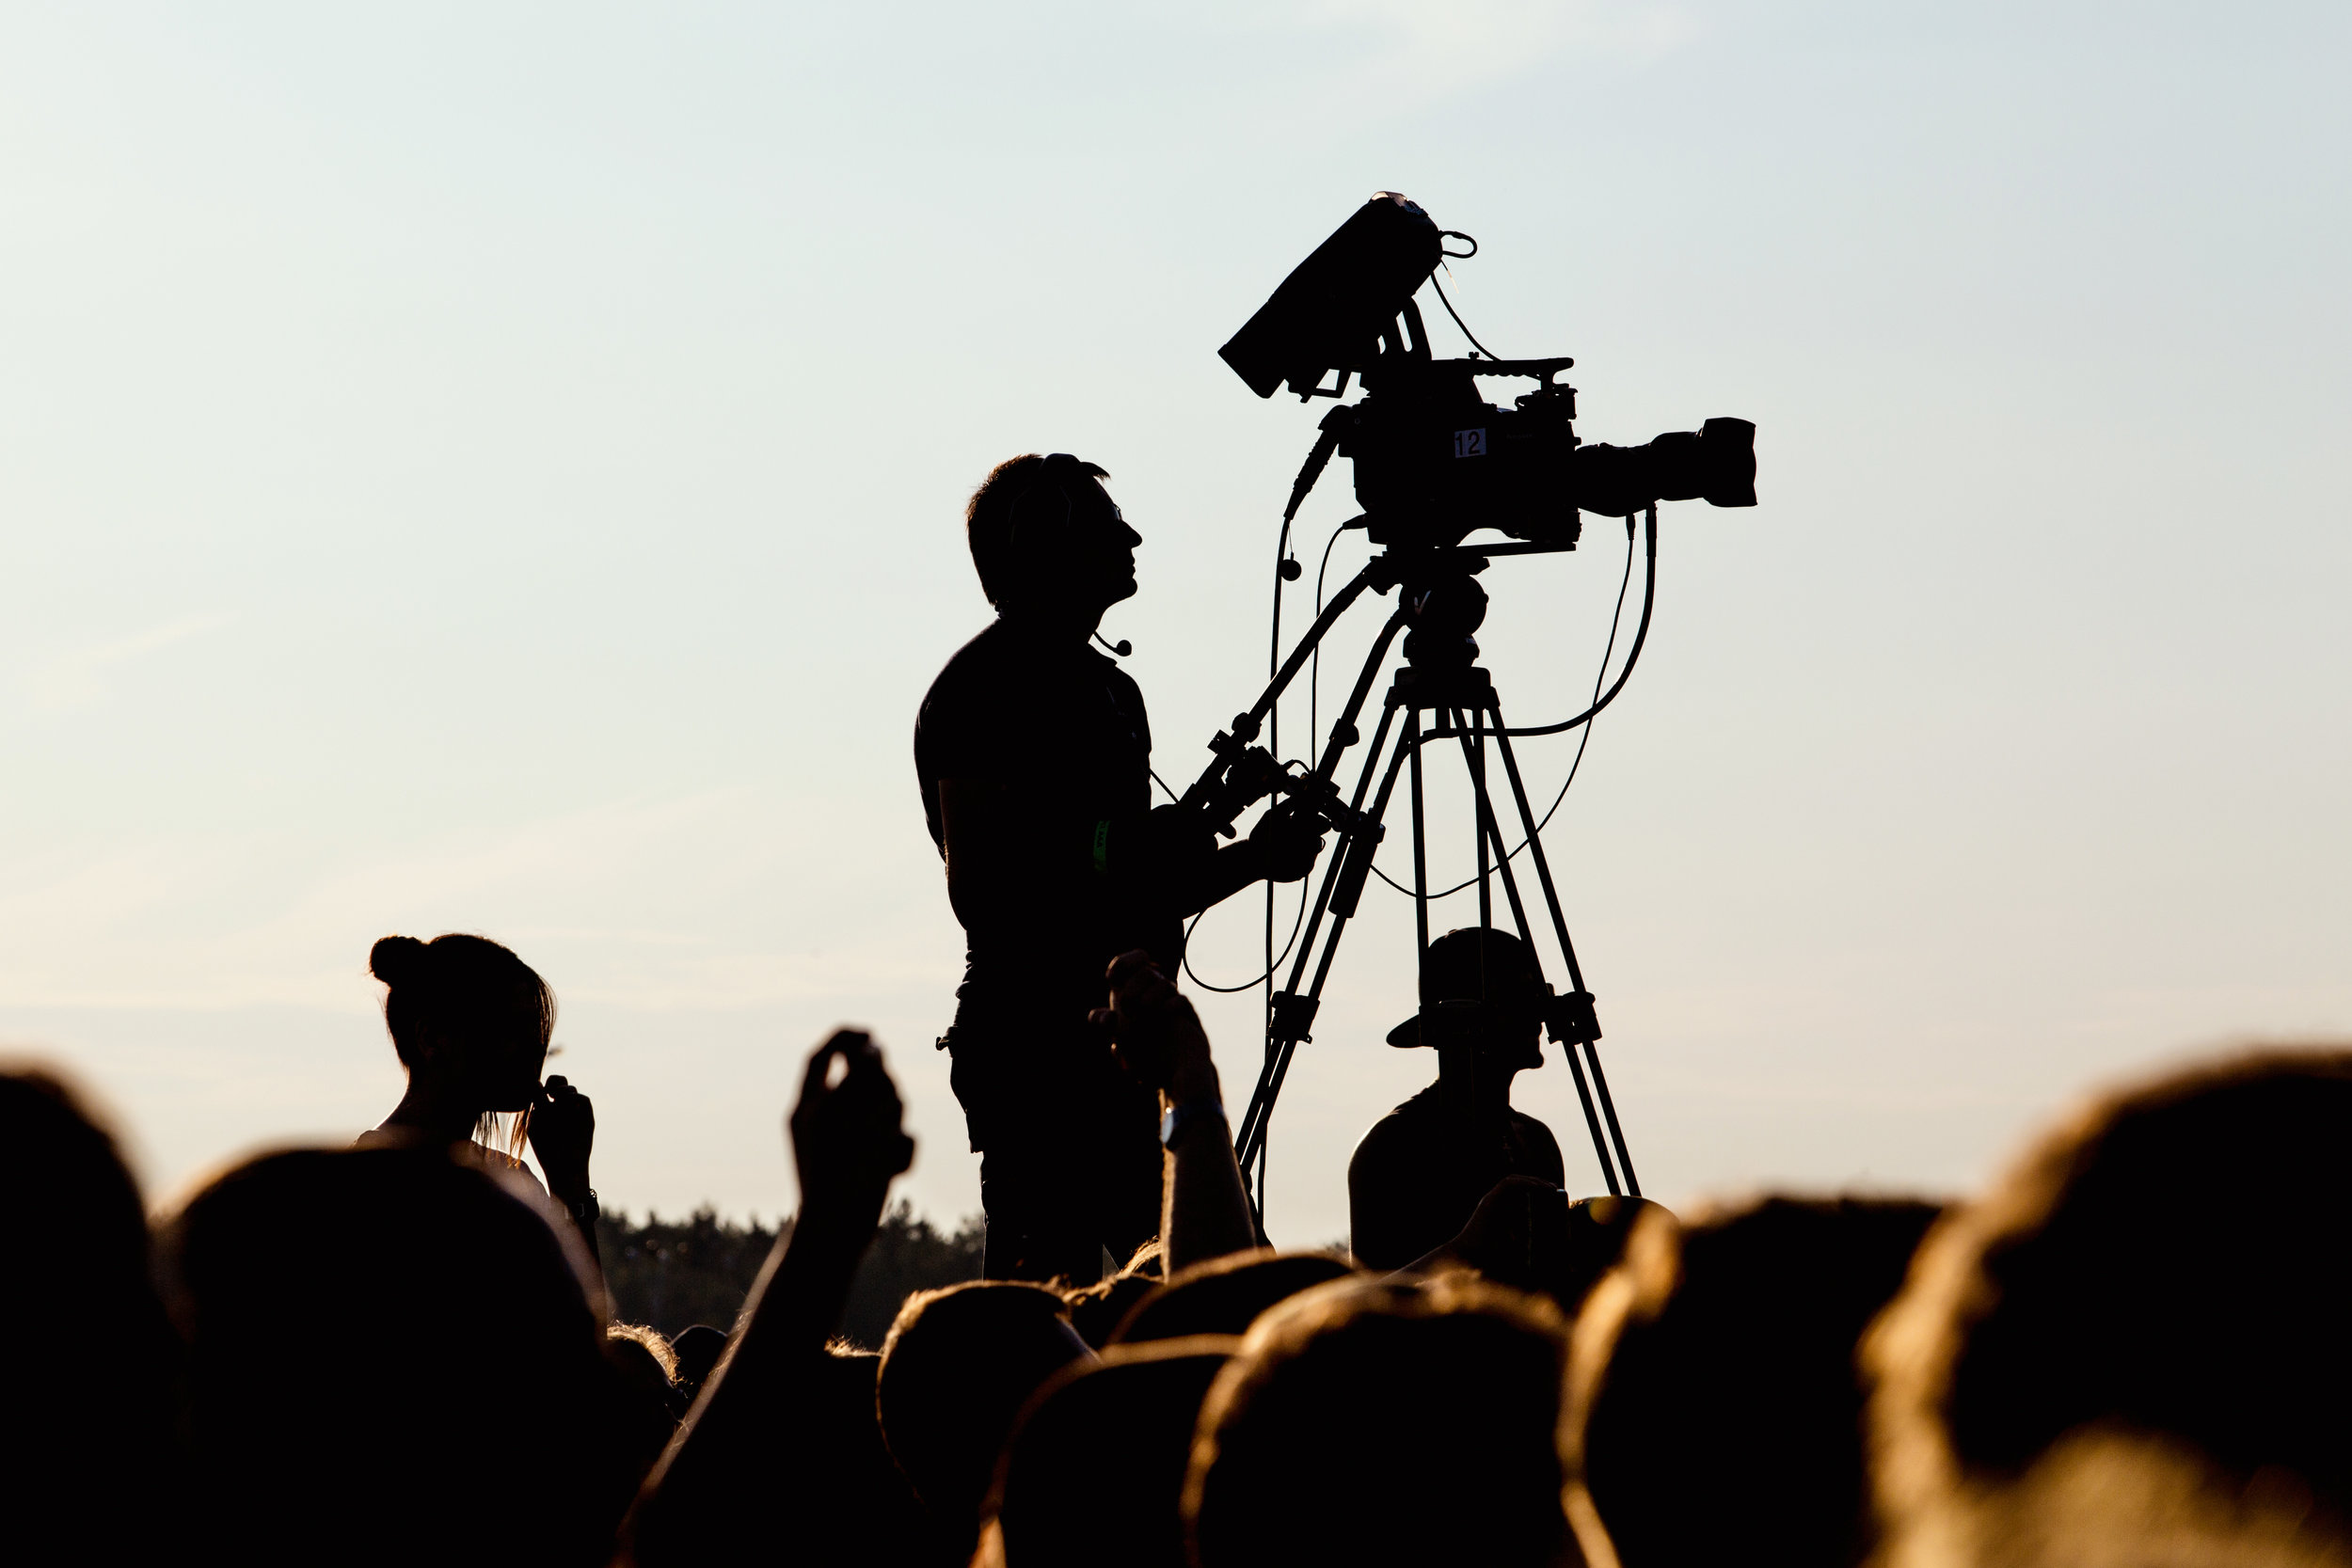 LIVE EVENT VIDEO PRODUCTION - We offer multi-camera, broadcast-quality, high definition (HD) video production to cover every aspect of your event.